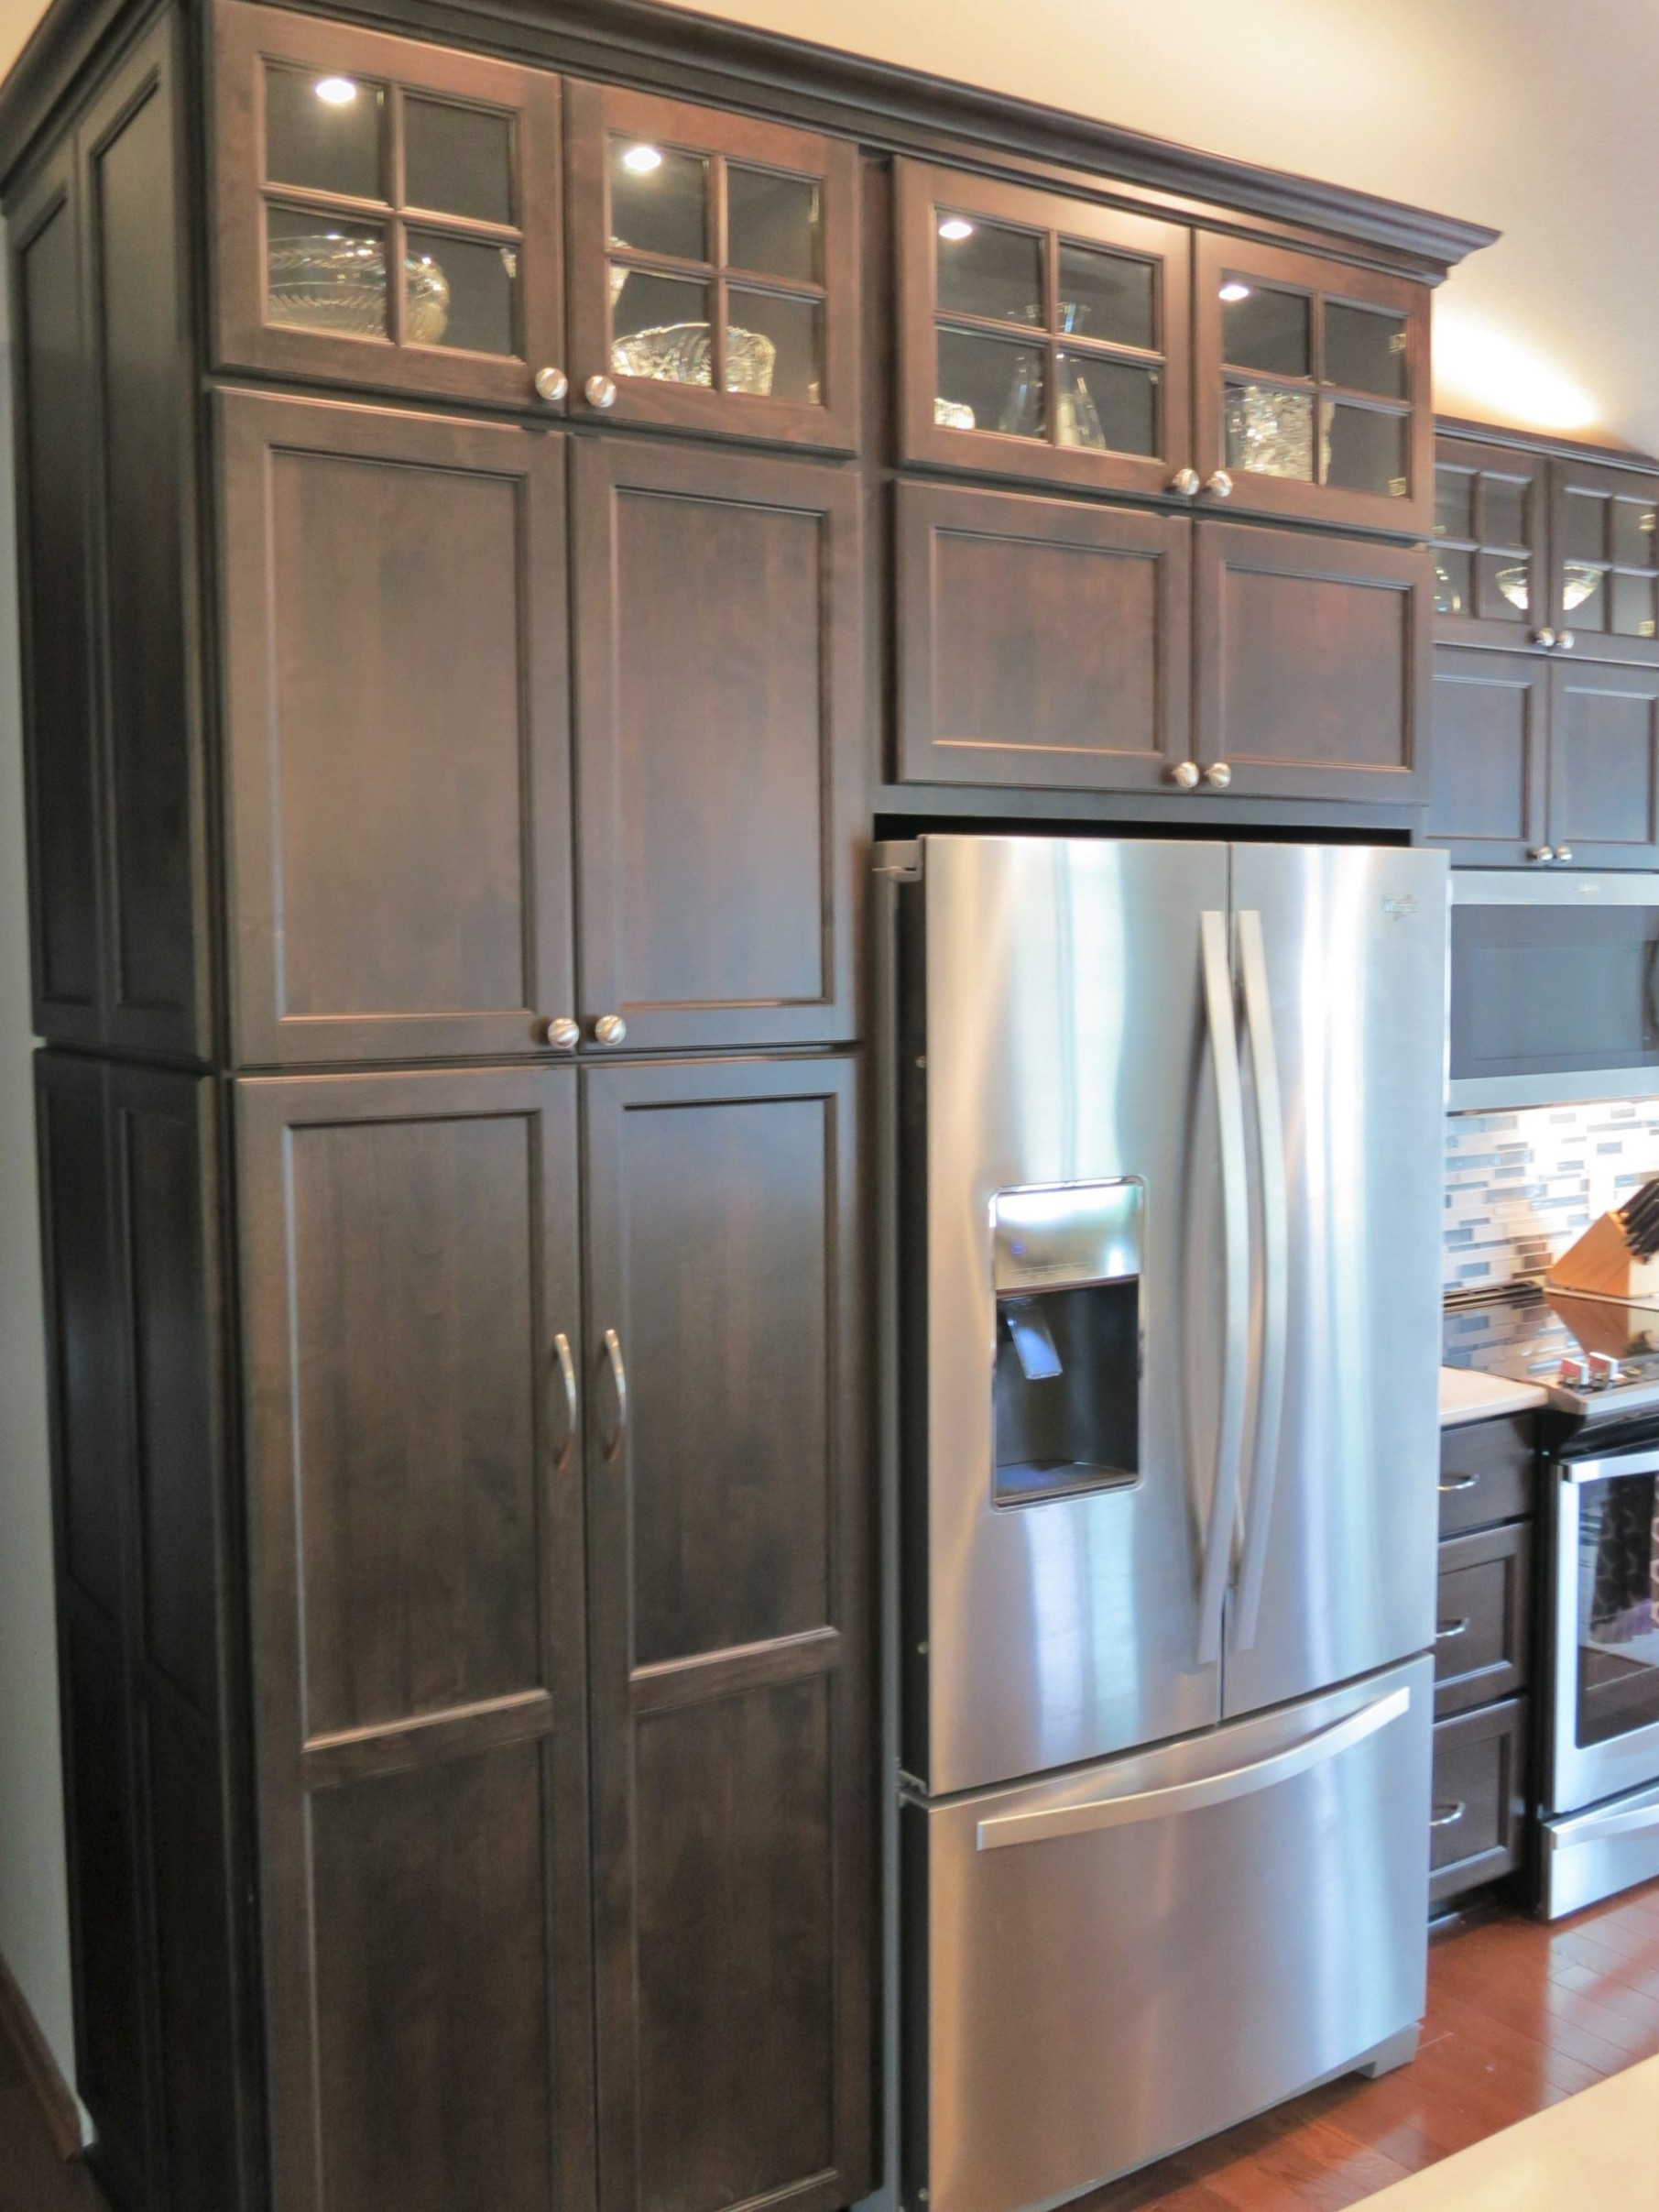 Woodbury Kitchen Redesign (4)